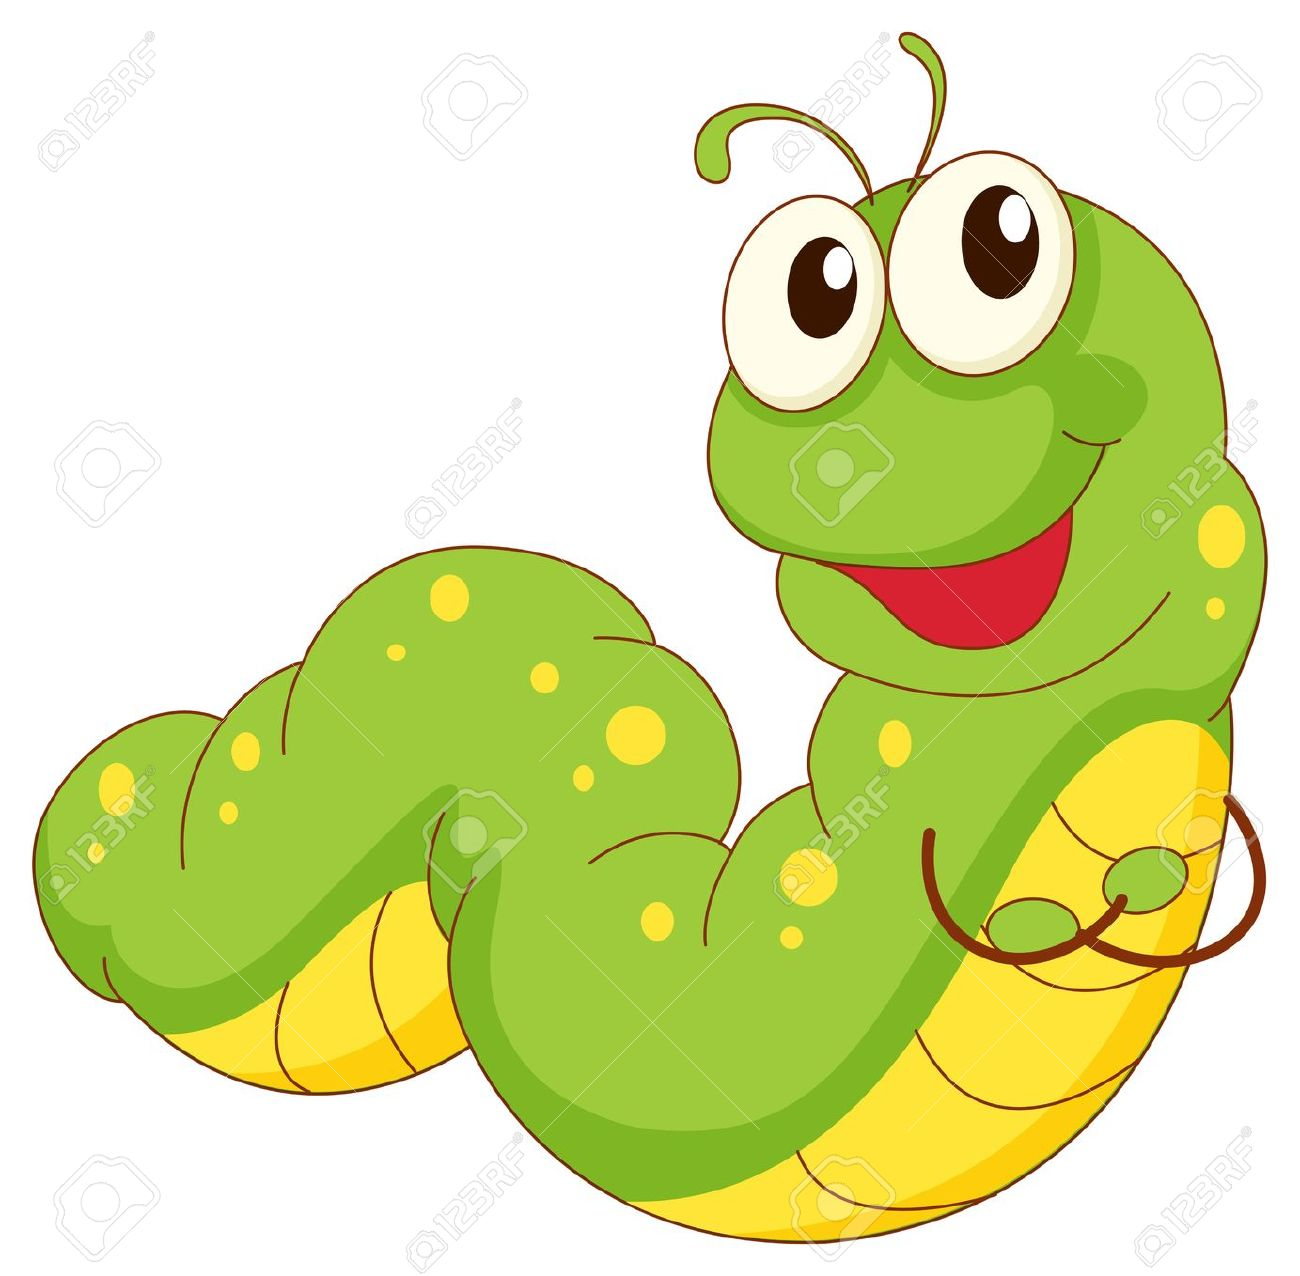 Clipart inchworm clipart library stock Inchworm Clipart | Free download best Inchworm Clipart on ClipArtMag.com clipart library stock